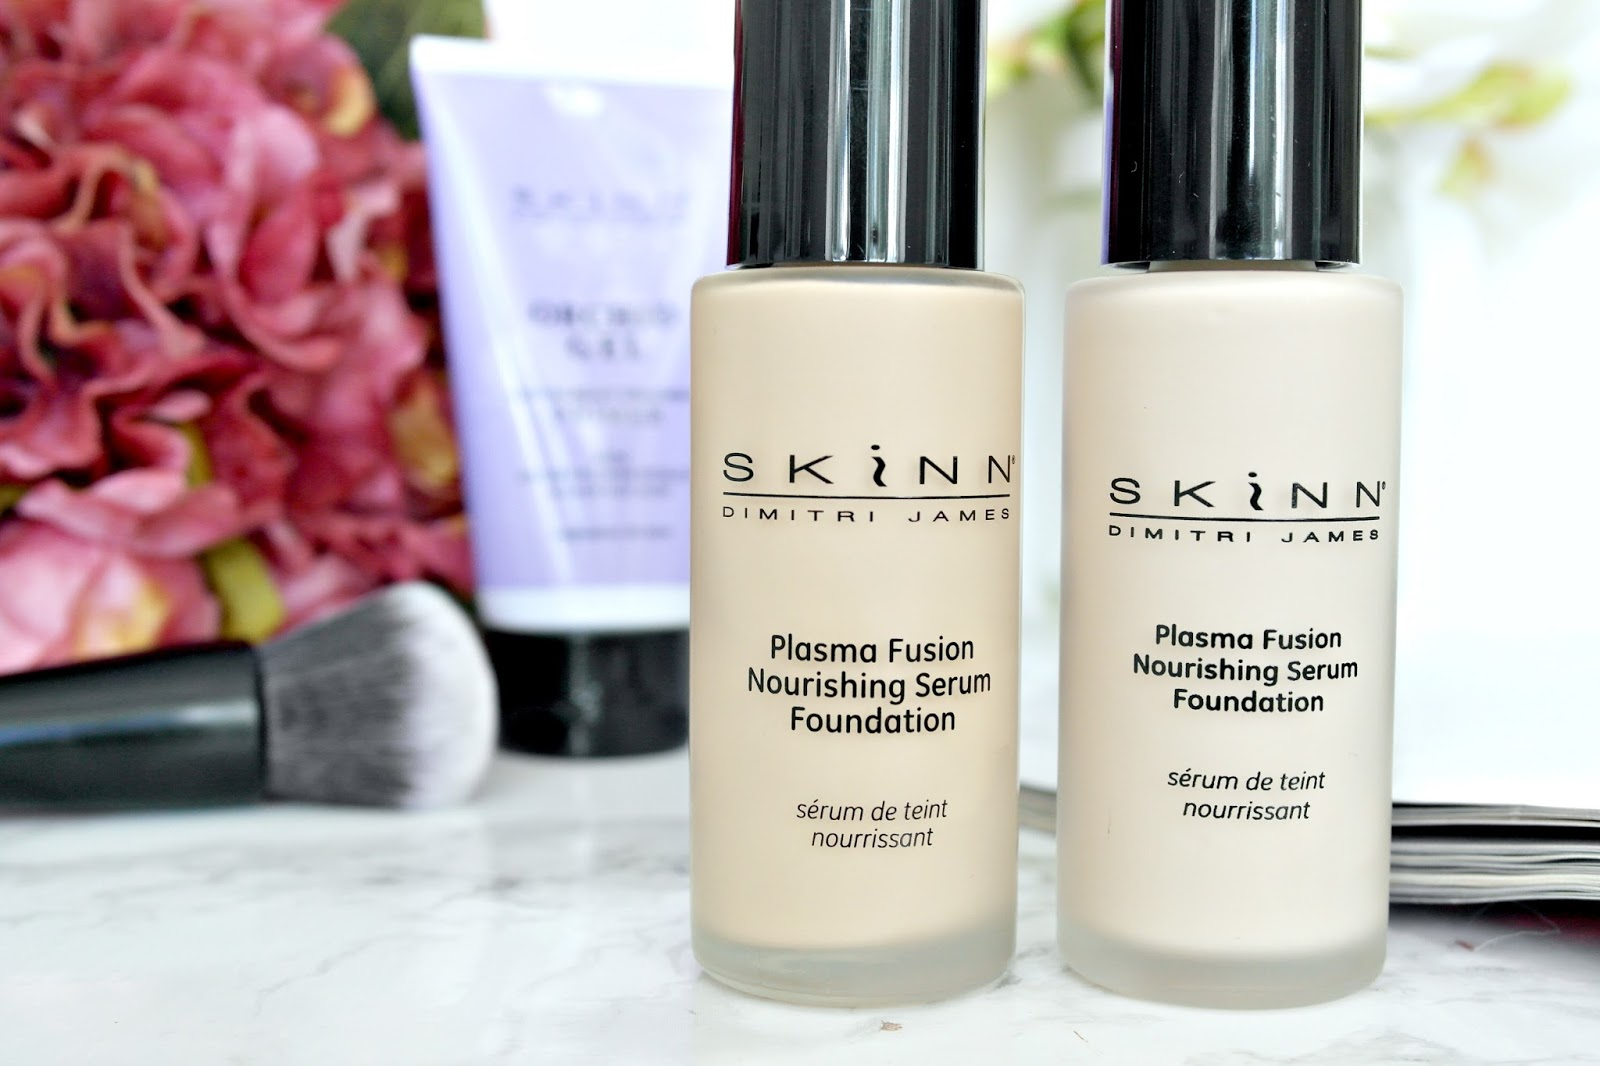 Skinn Plasma Fusion Nourishing Serum Foundation, review, ideal world